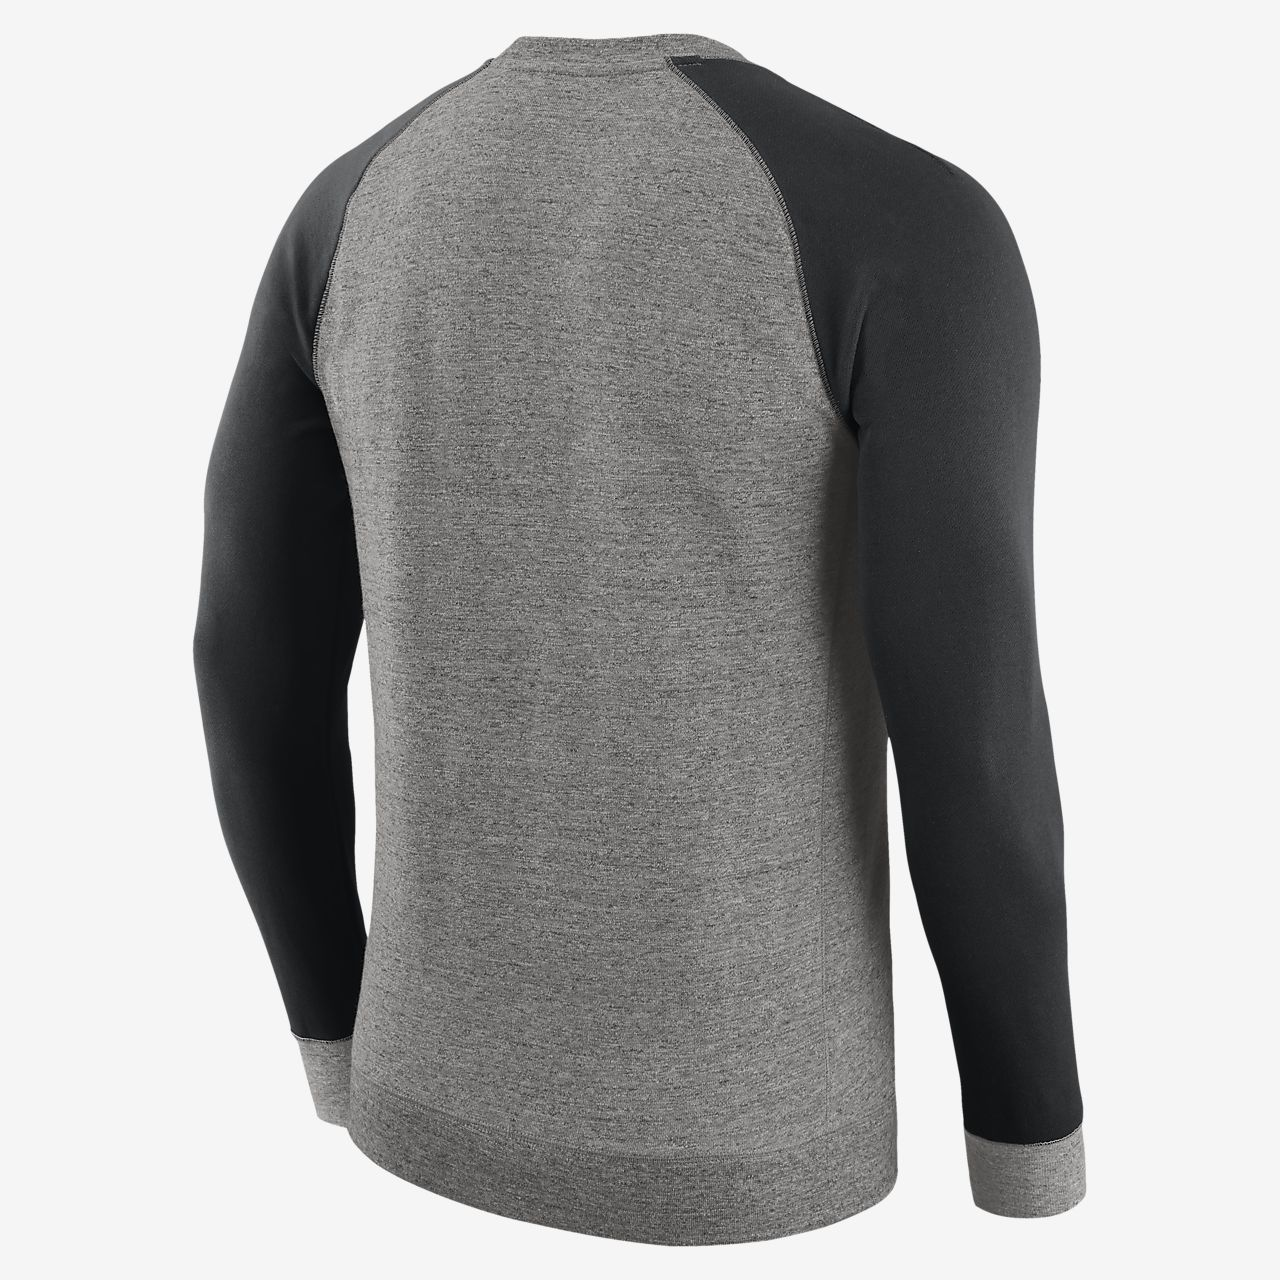 tout neuf d39d0 97cae Nike AW77 (NFL Dolphins) Men's Crew